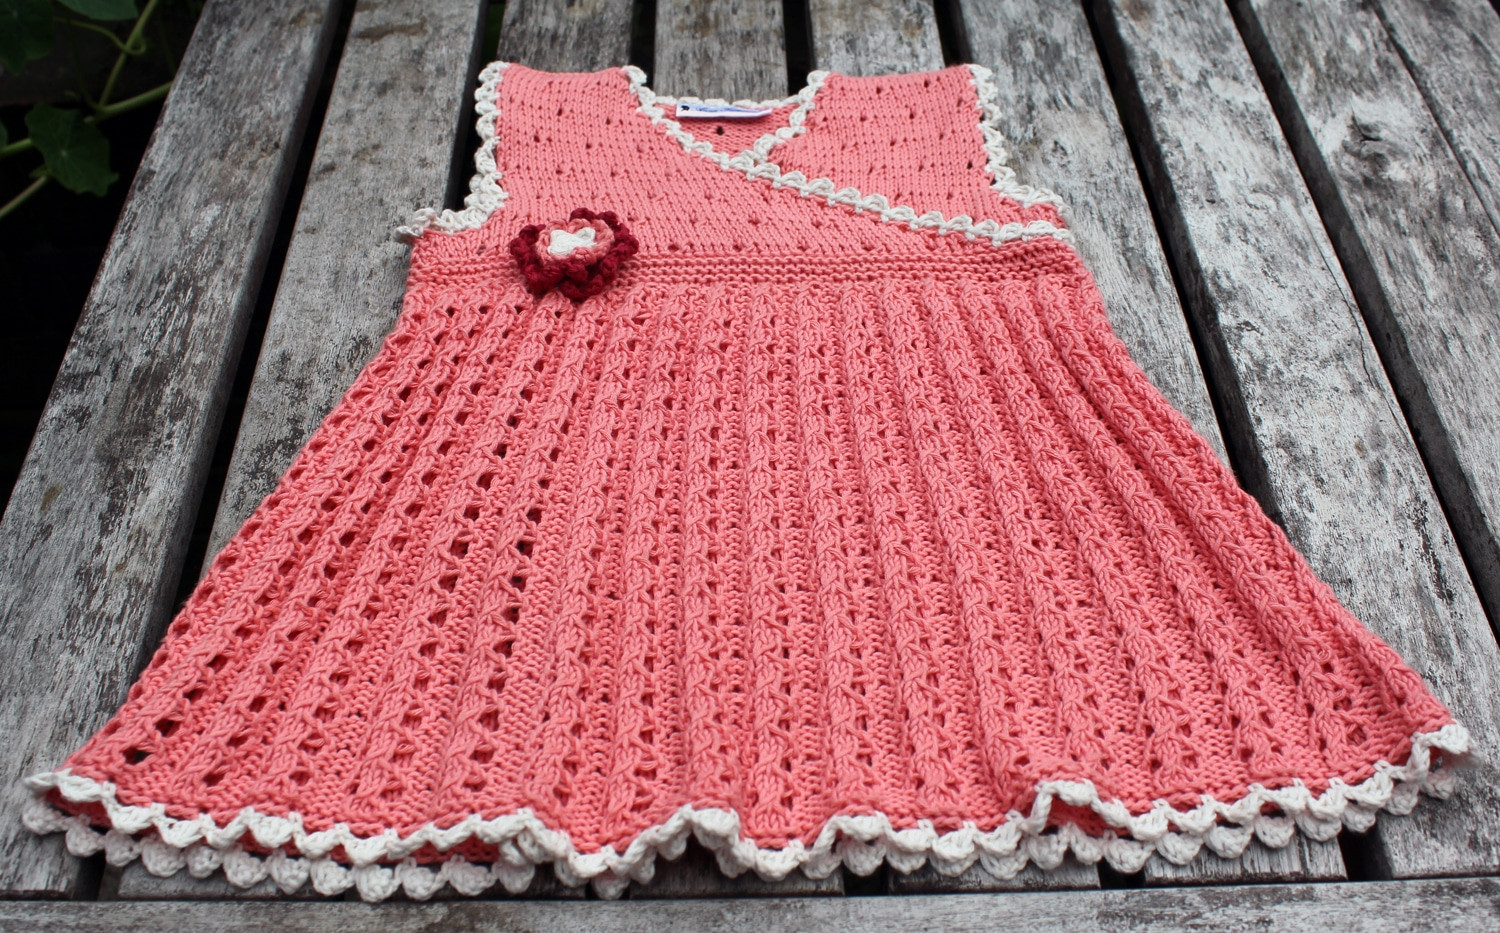 Easy Knitting Patterns for Beginners Bing images